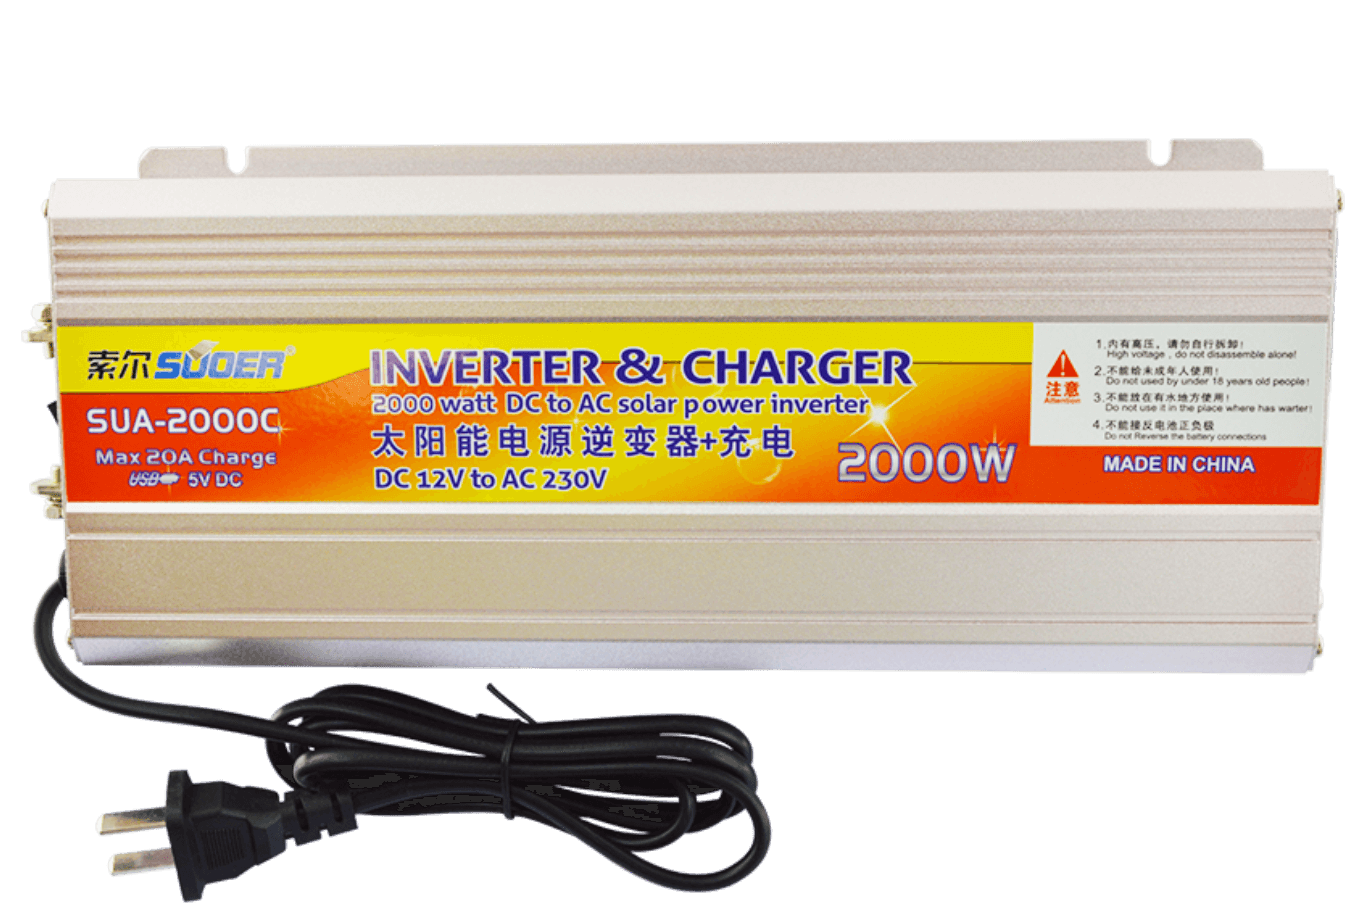 2000W 12V 220V New Power Inverter with Charger